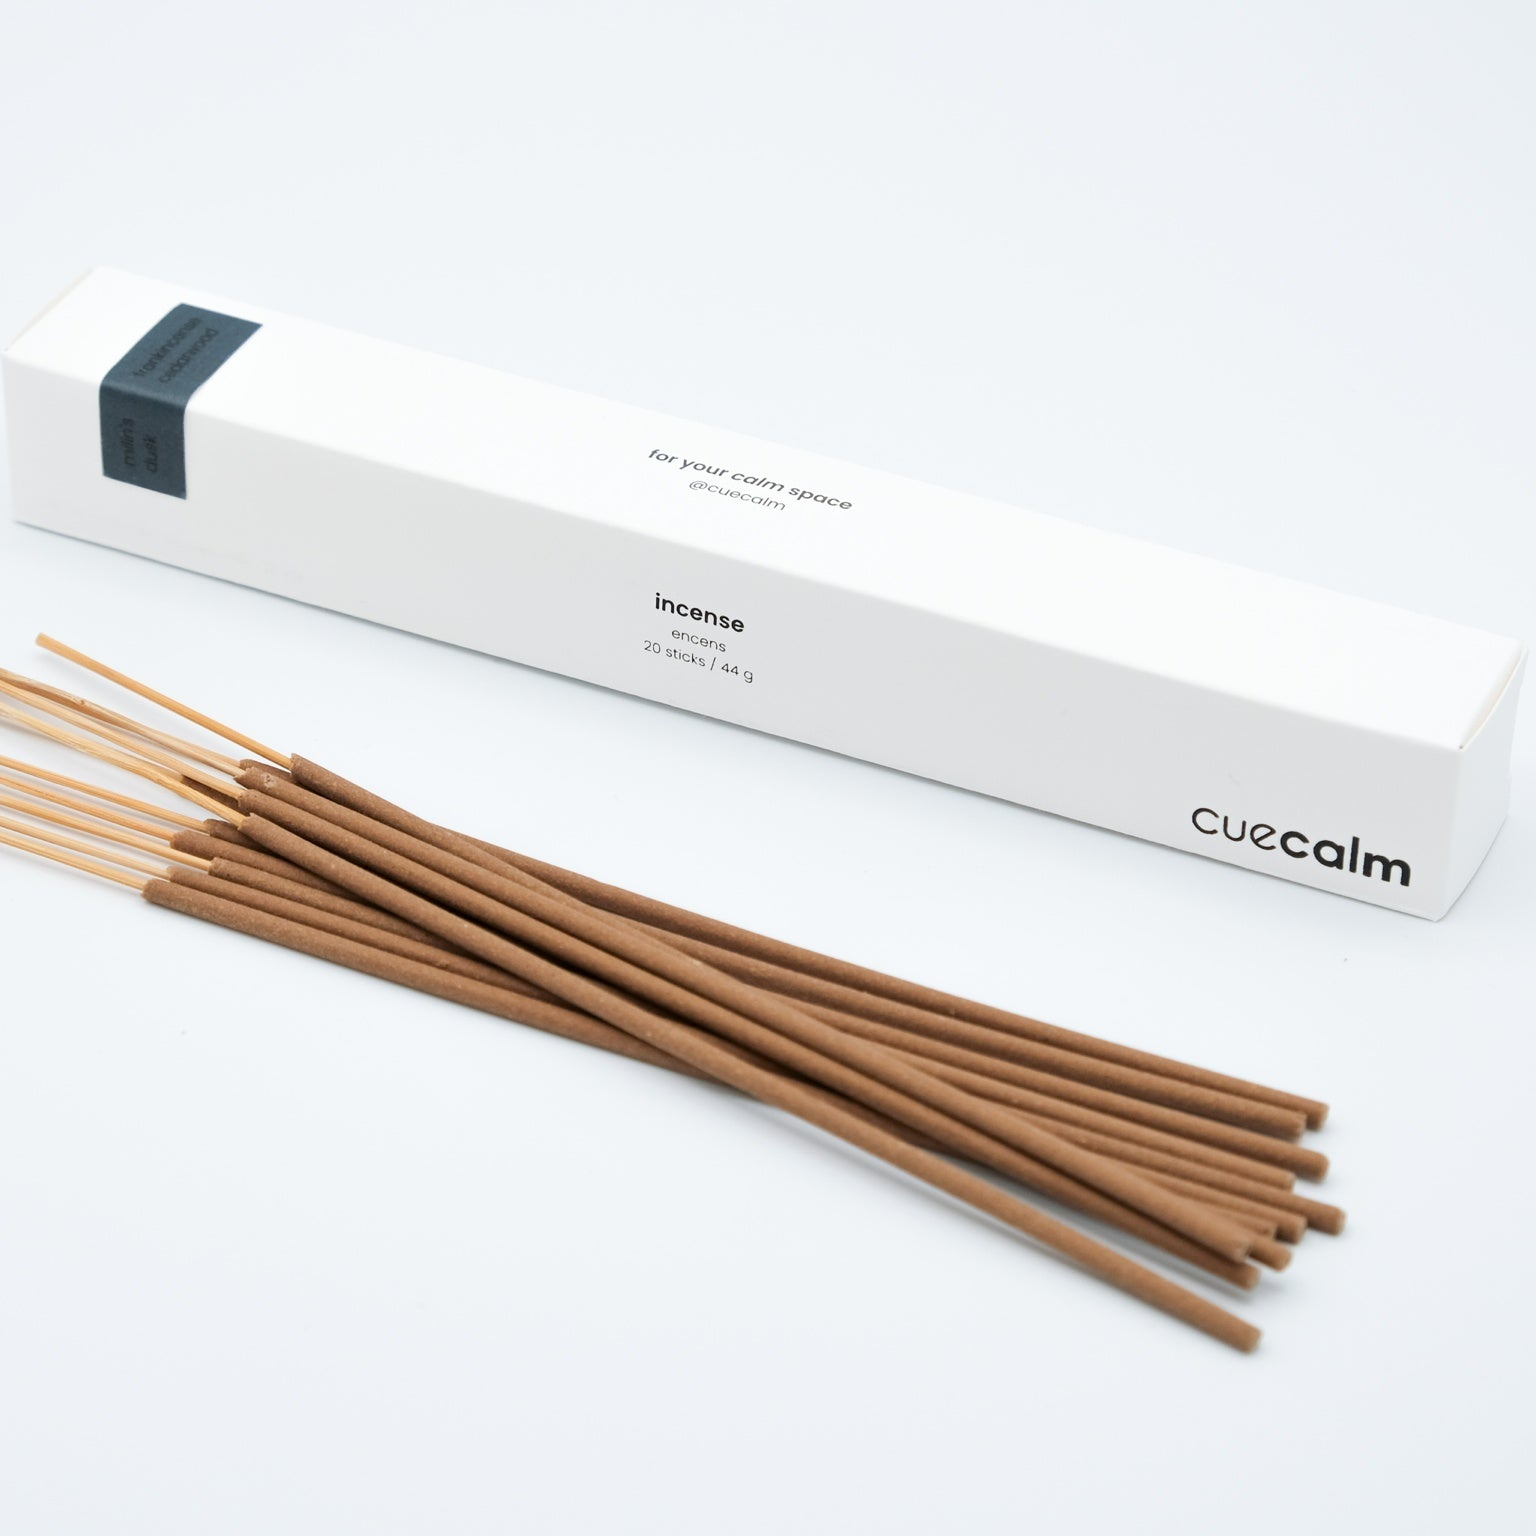 frankincense and cedarwood essential oils in hand-dipped incense. home fragrance canada.